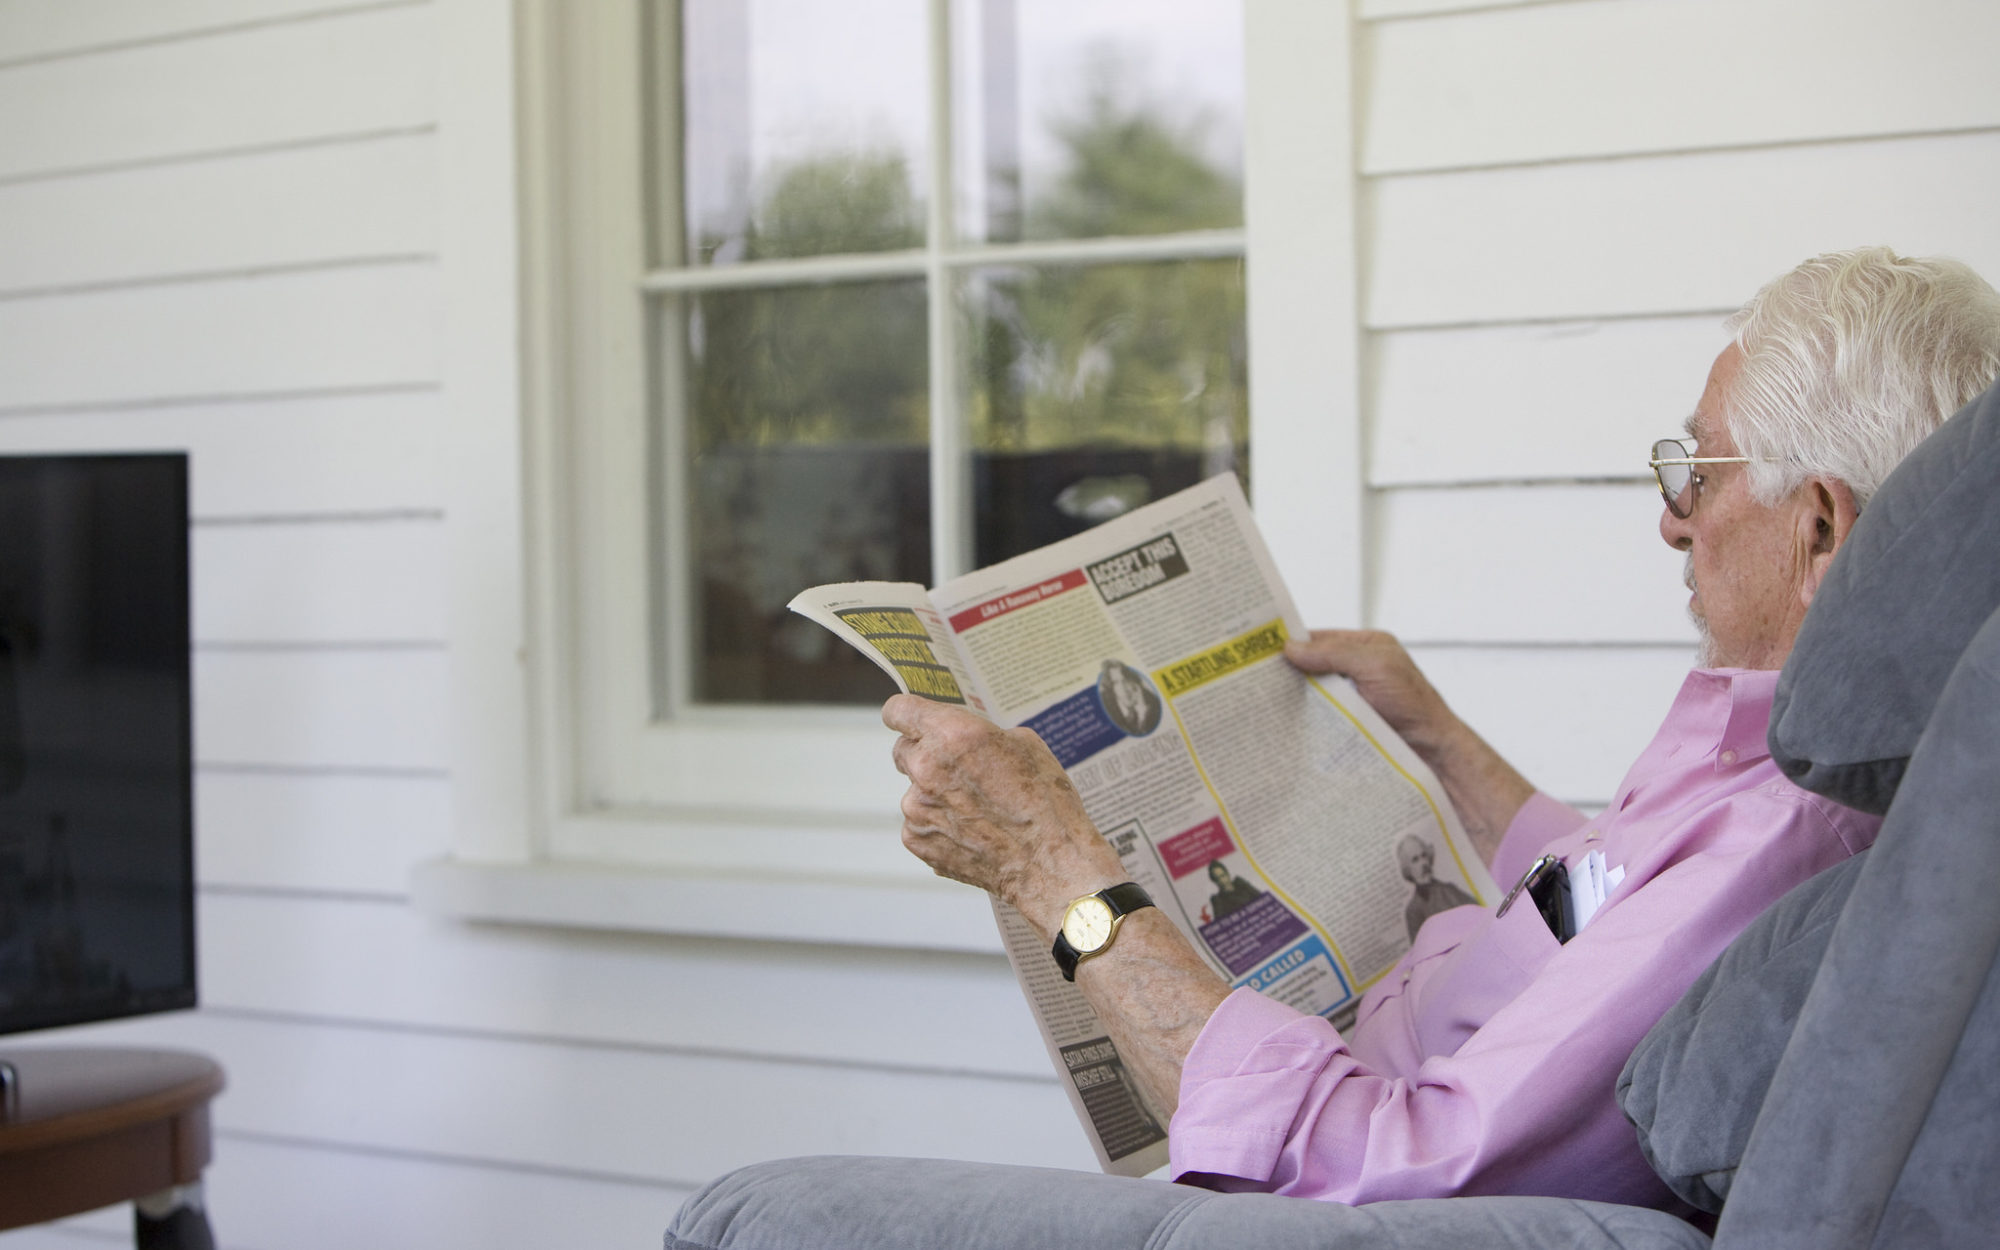 Individual sits in a recliner and reads the newspaper